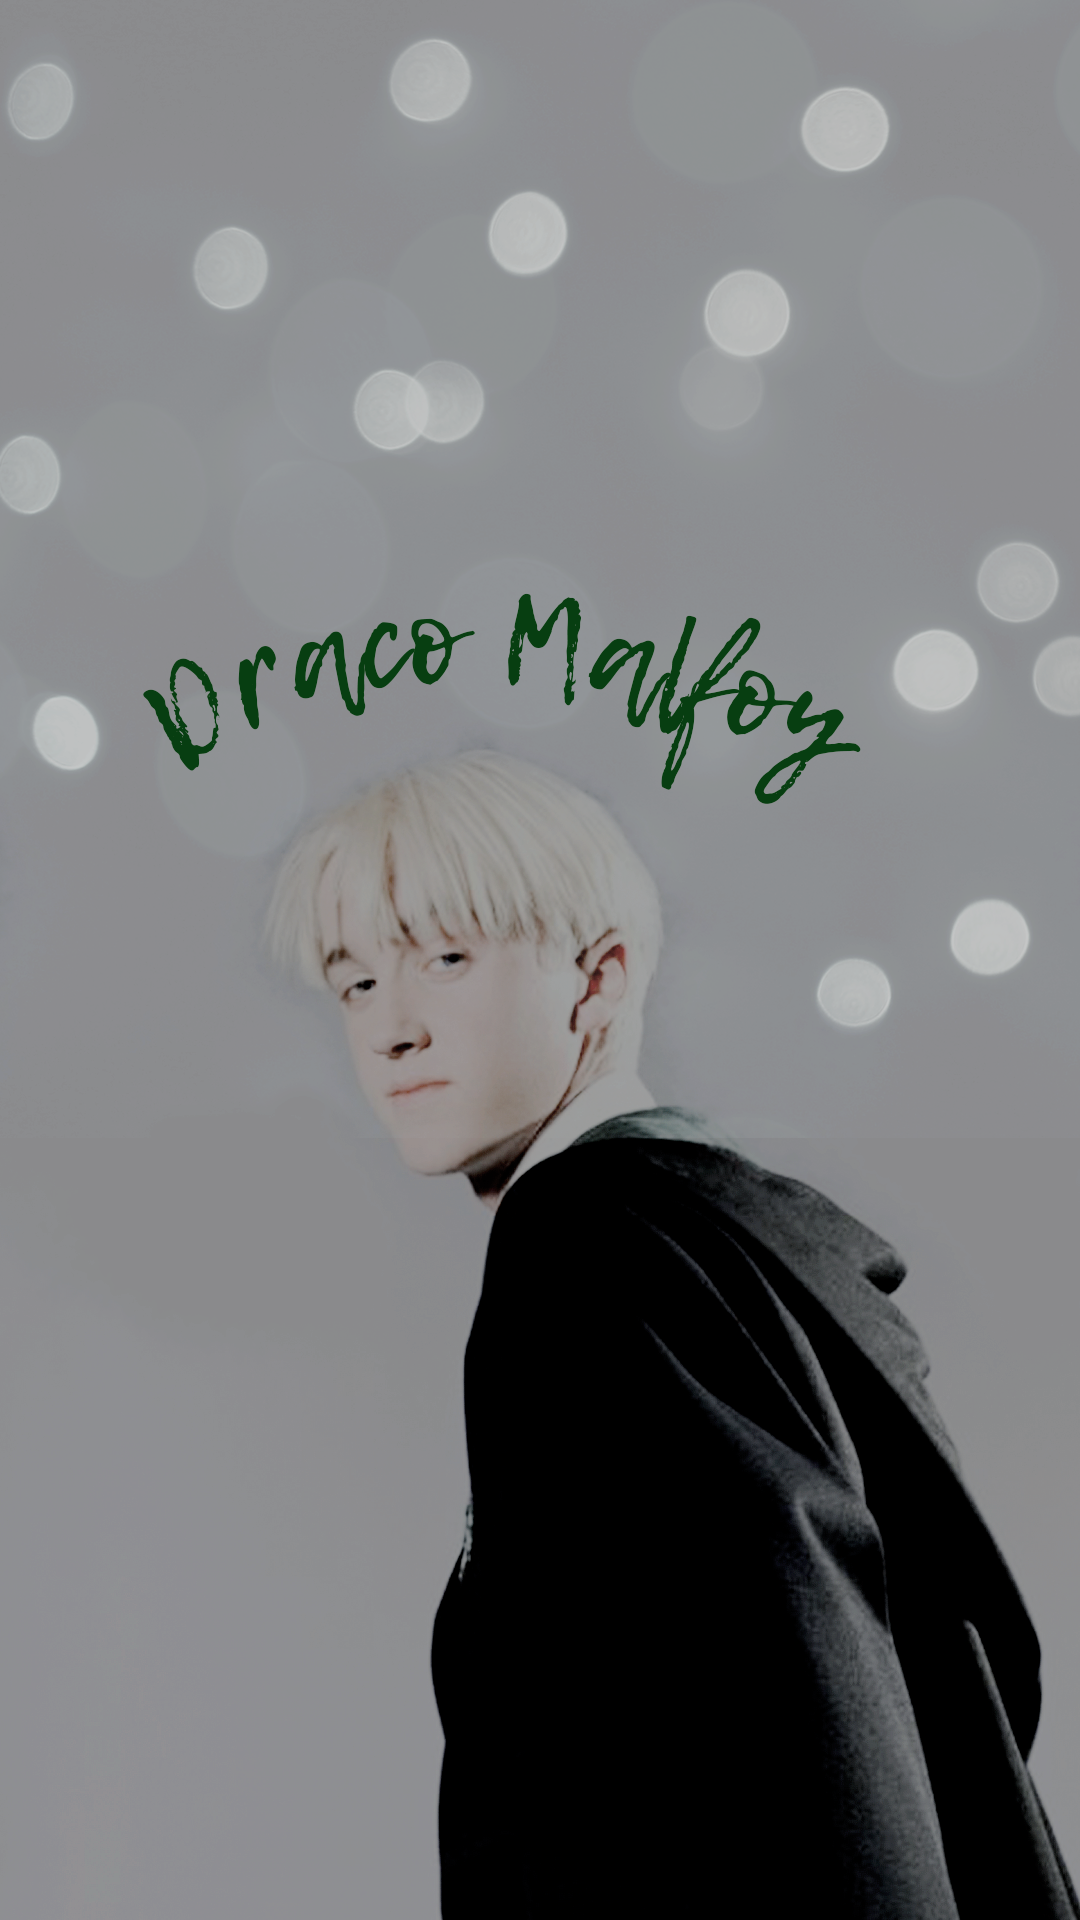 Draco Malfoy Wallpapers Tumblr Draco Malfoy Fanart Draco Malfoy Draco Harry Potter